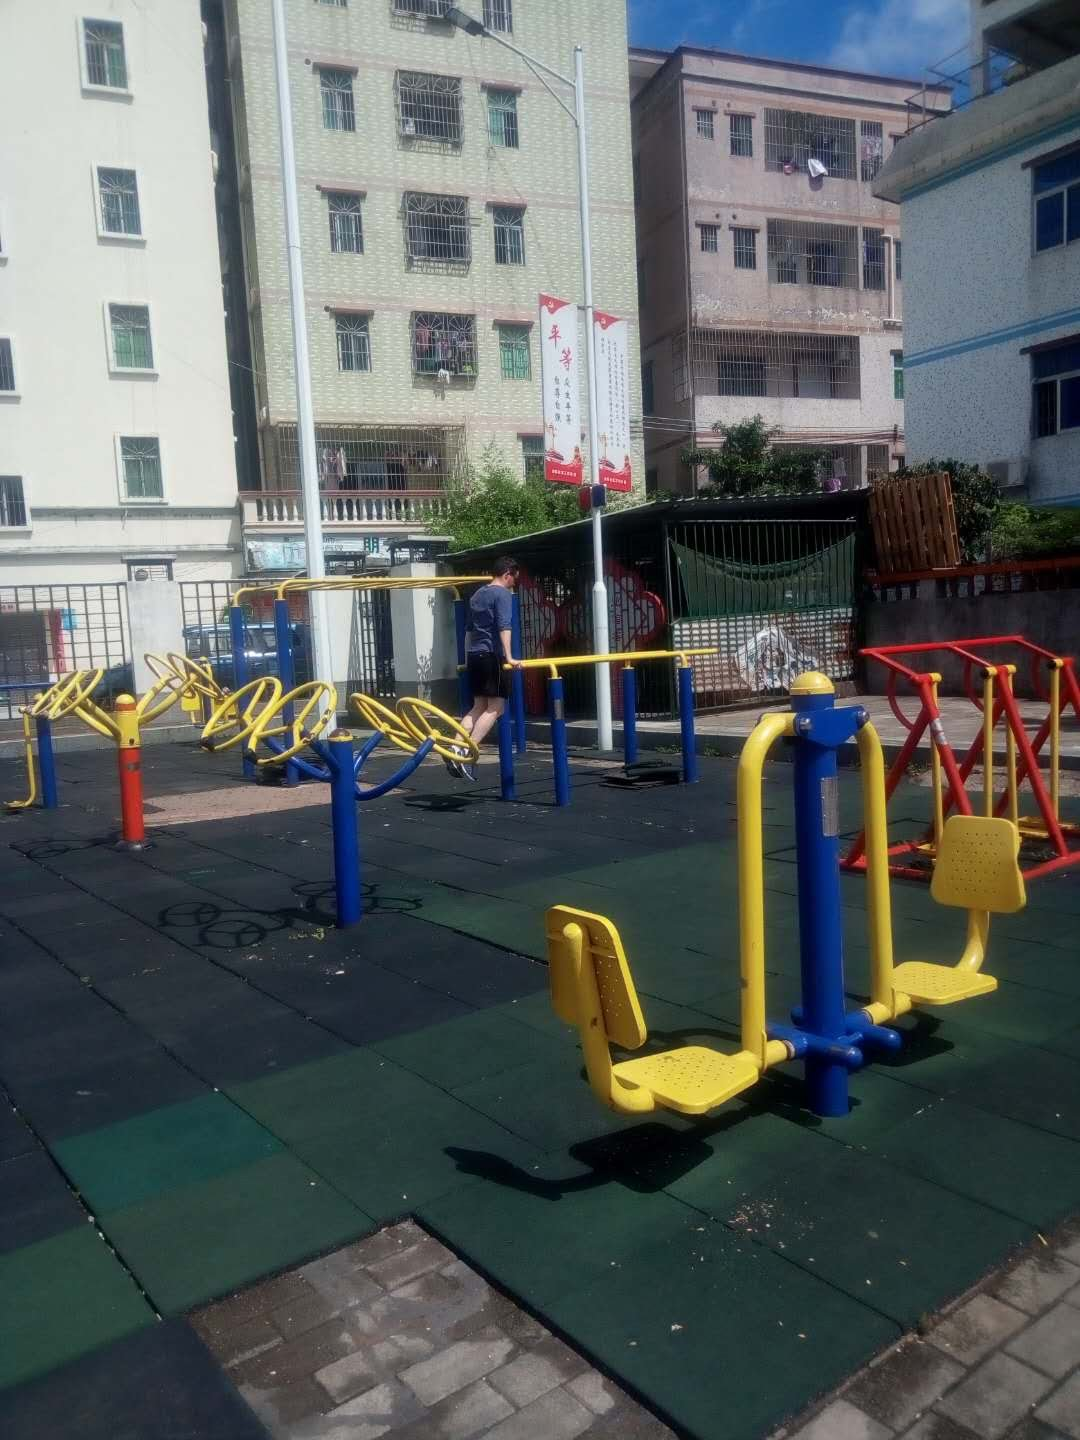 Exercising in an outdoor gym